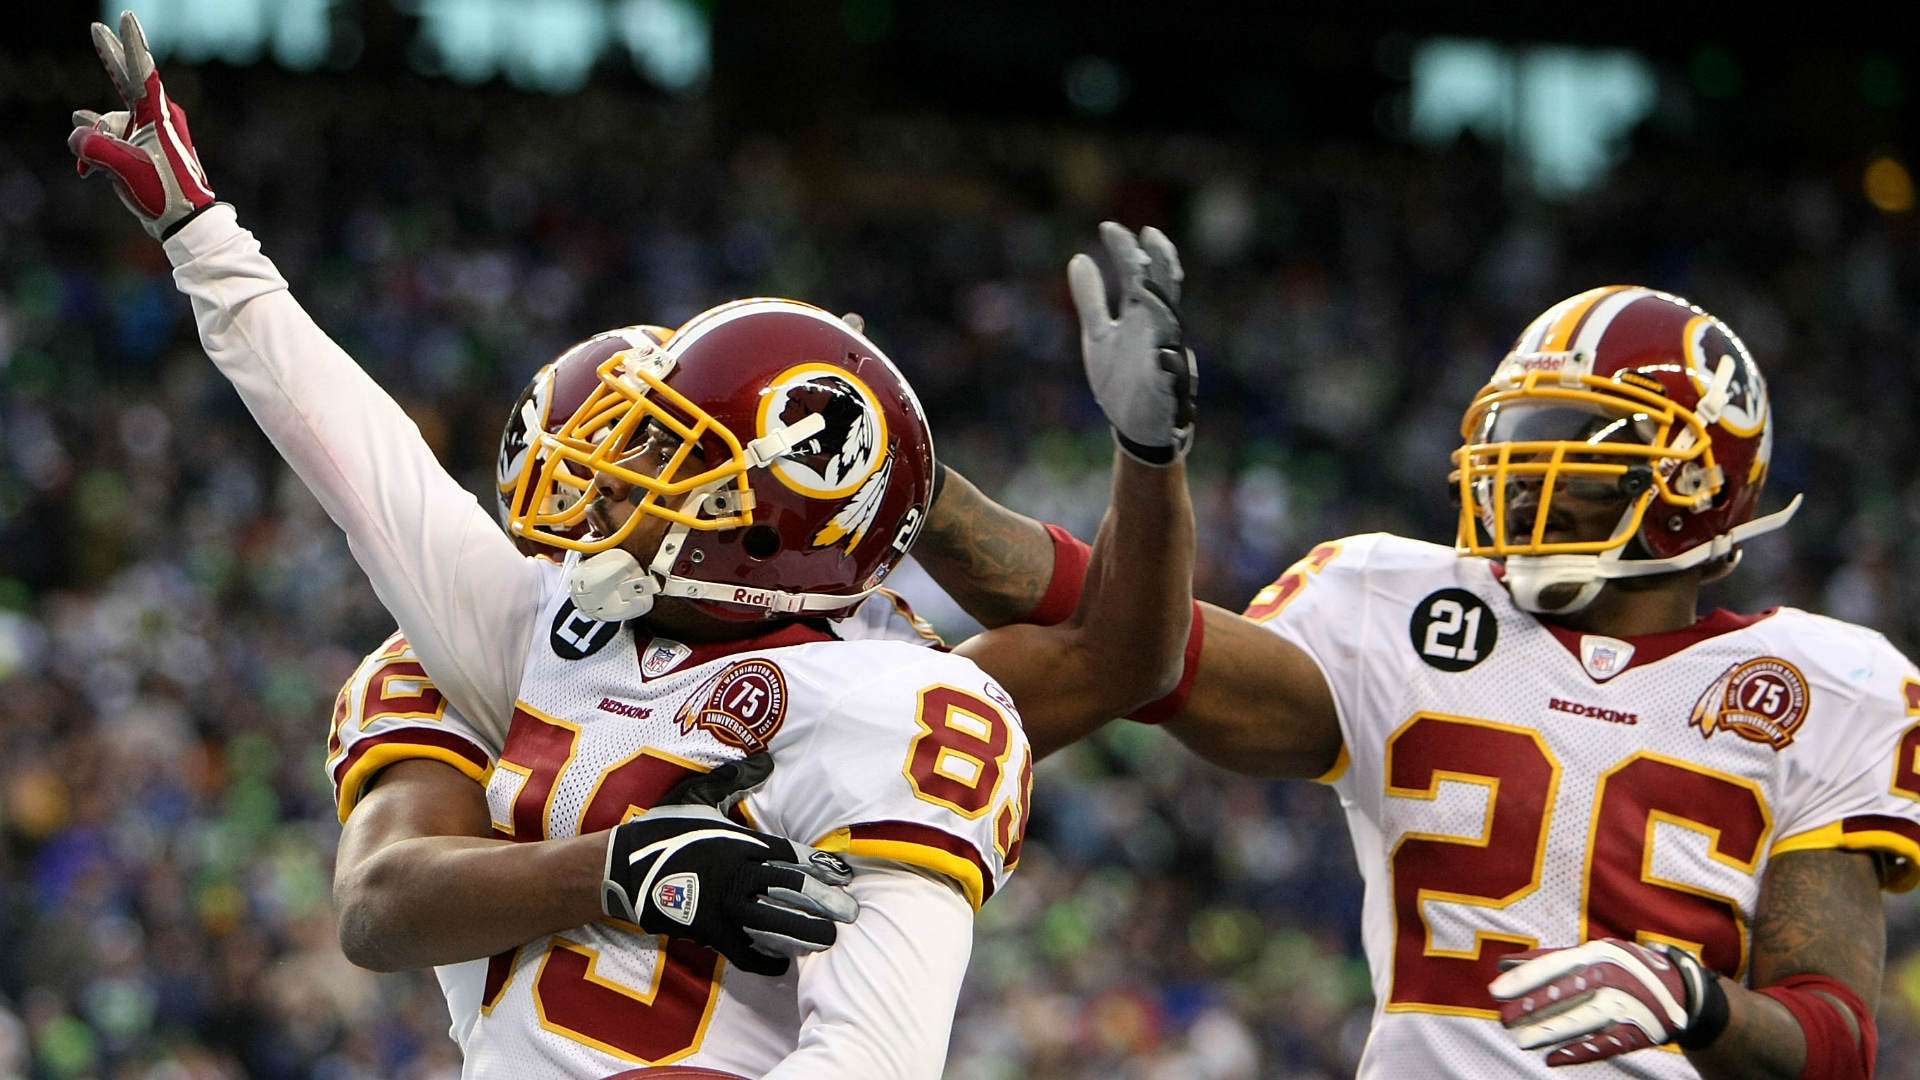 Clinton Portis, Santana Moss Admit To Drinking Before Games